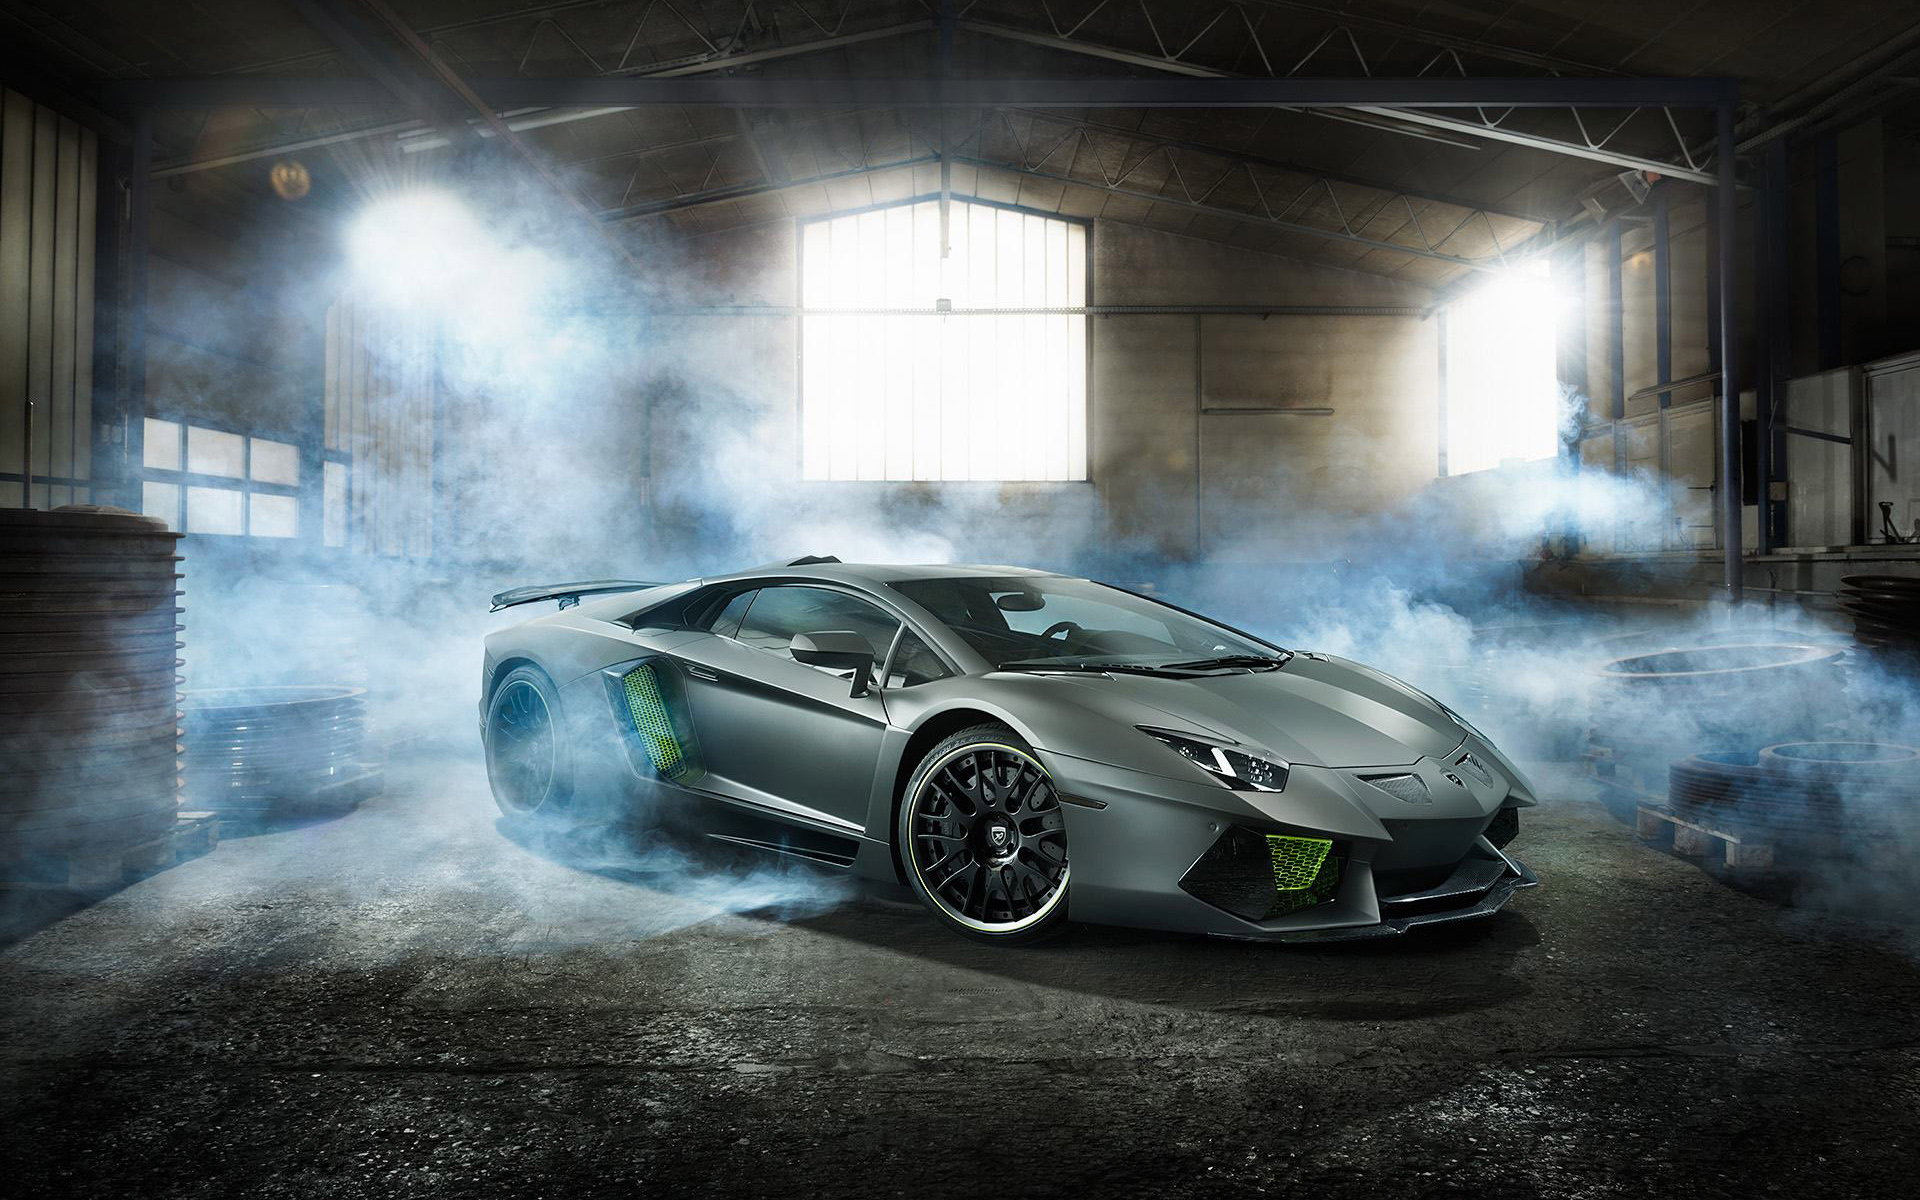 2014 Hamann Lamborghini Aventador Wallpapers HD Wallpapers 1920x1200